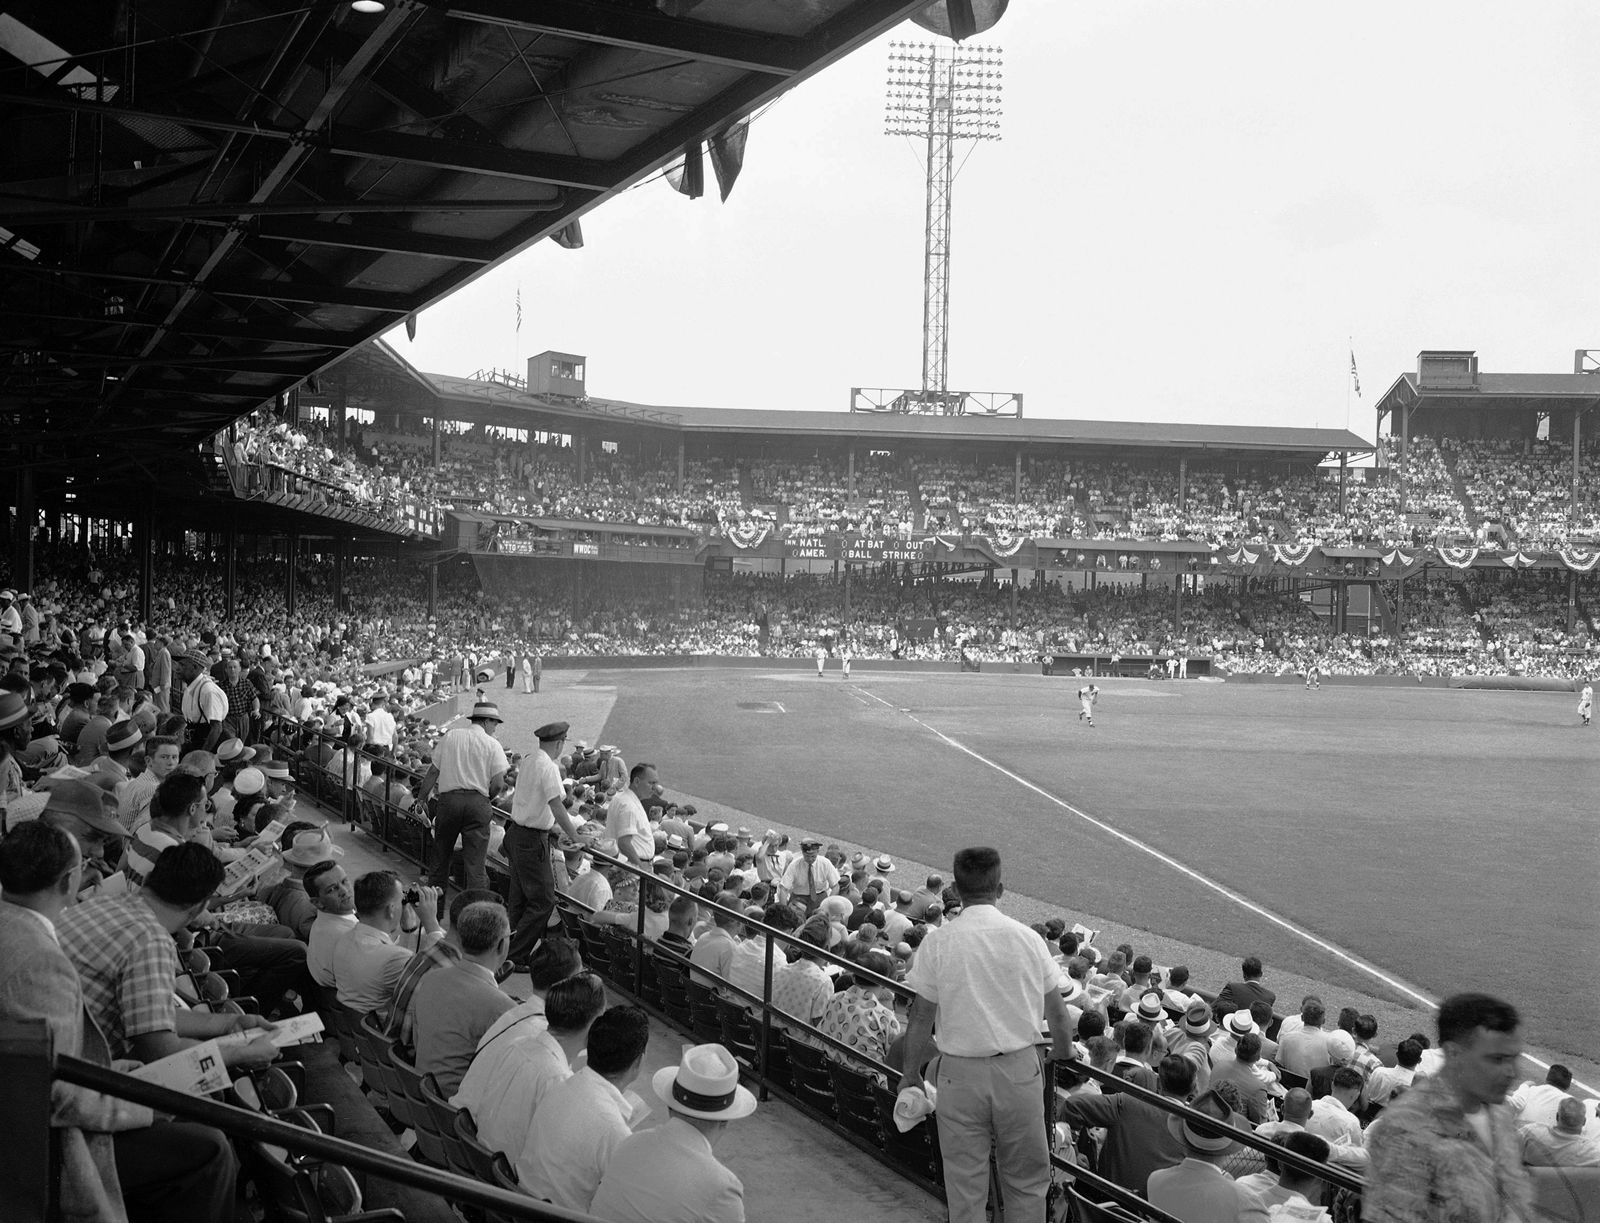 Griffith Stadium is packed with fans on hand for the 23rd All-Star major league baseball game in Washington, July 10, 1956. This view is from the right field corner of the lower deck shortly before game time. (AP Photo)